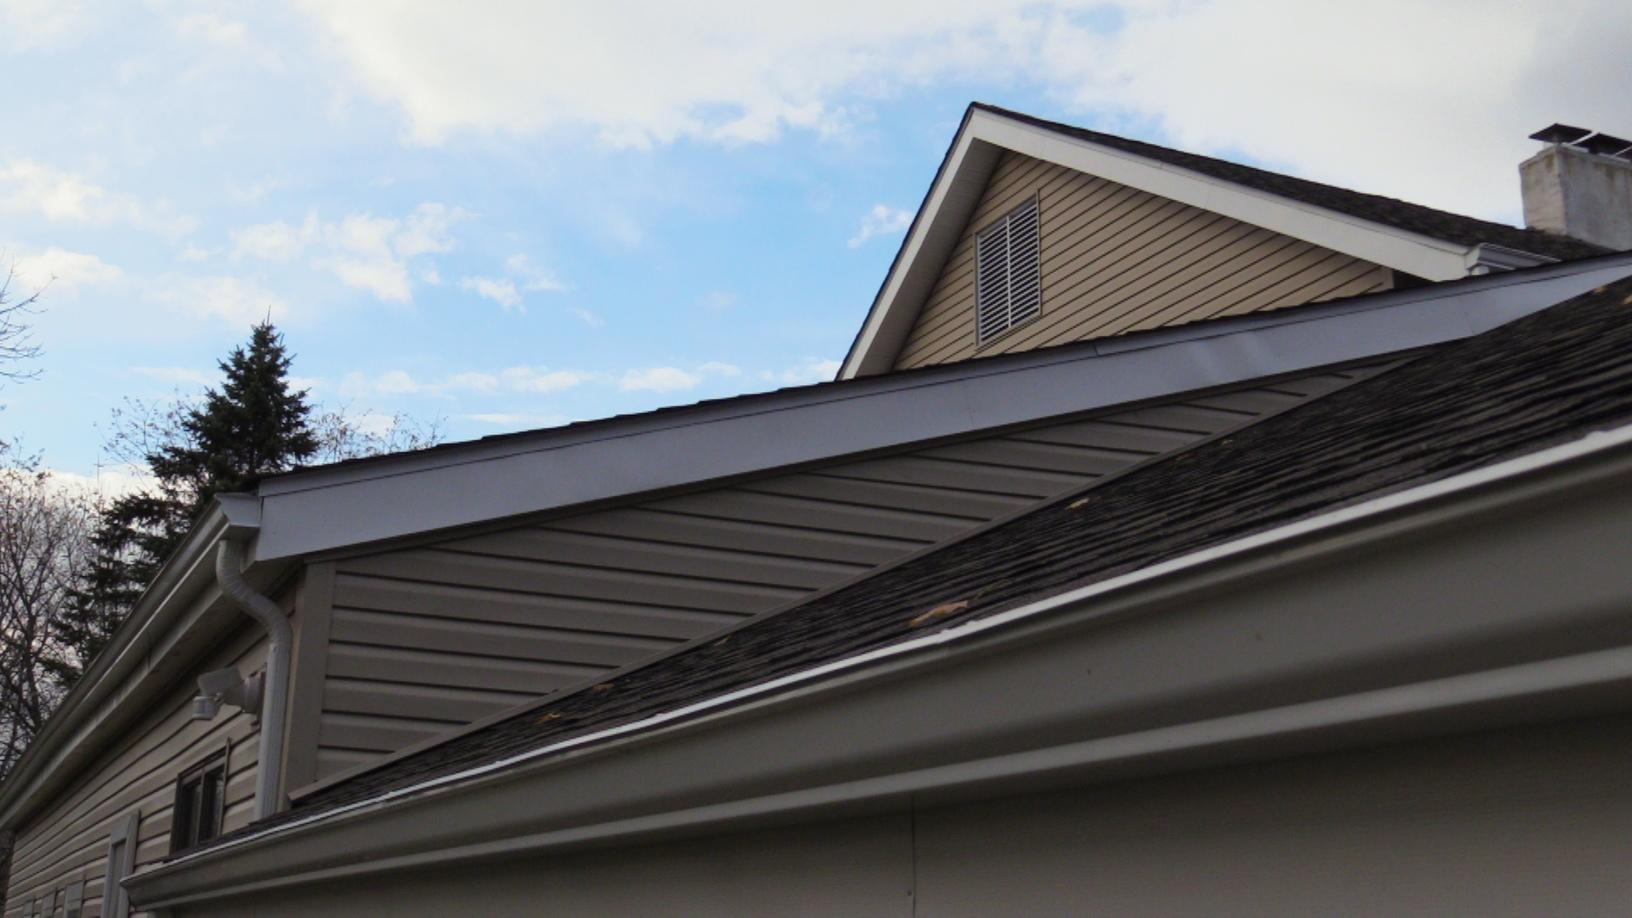 Gutters, Soffit, Fascia, All Around the Home